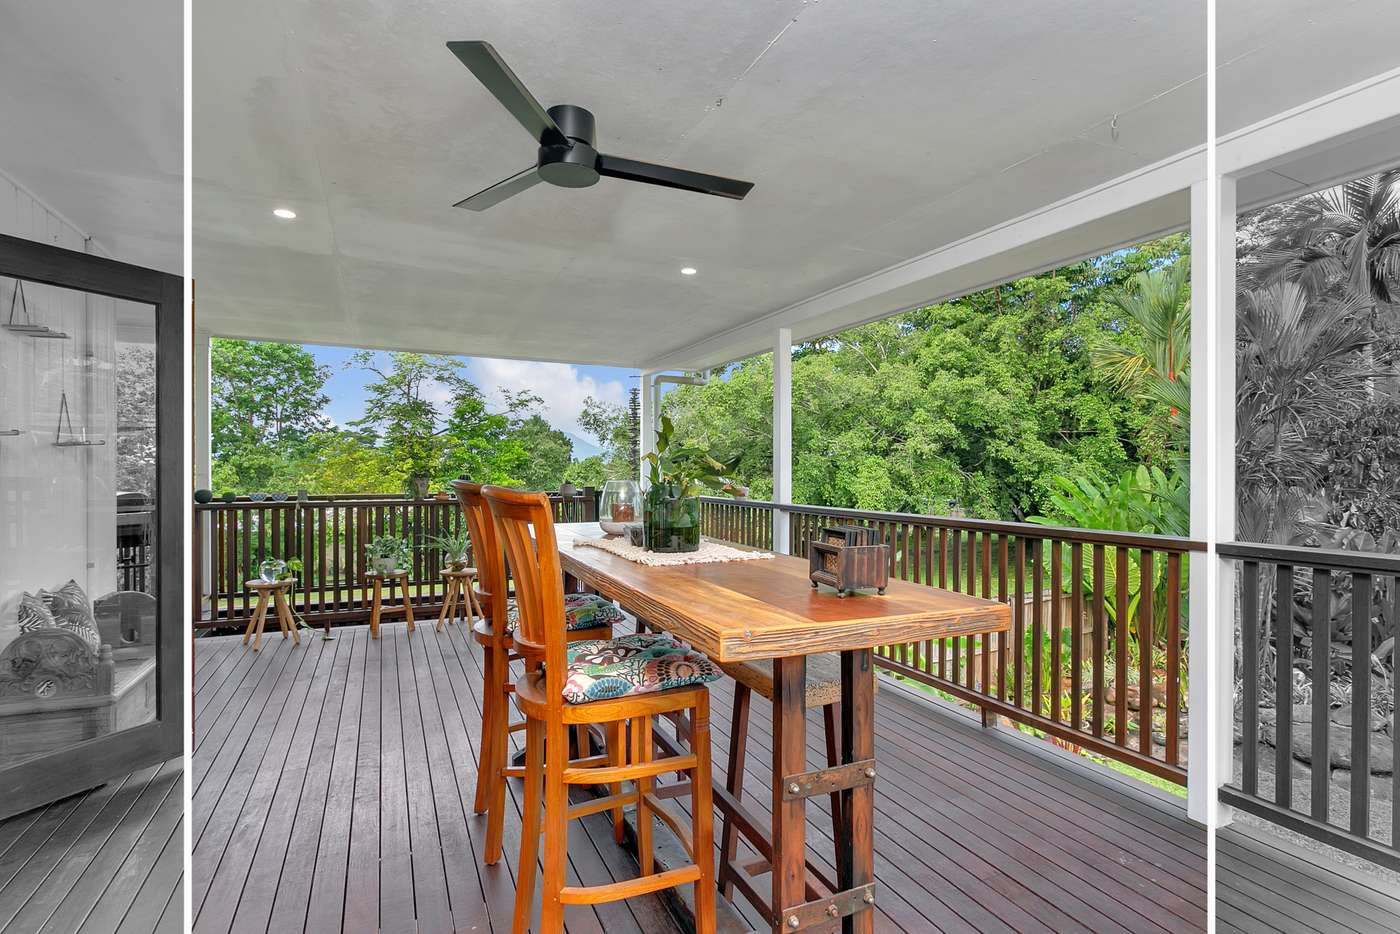 Main view of Homely house listing, 9 Duignan Street, Whitfield QLD 4870